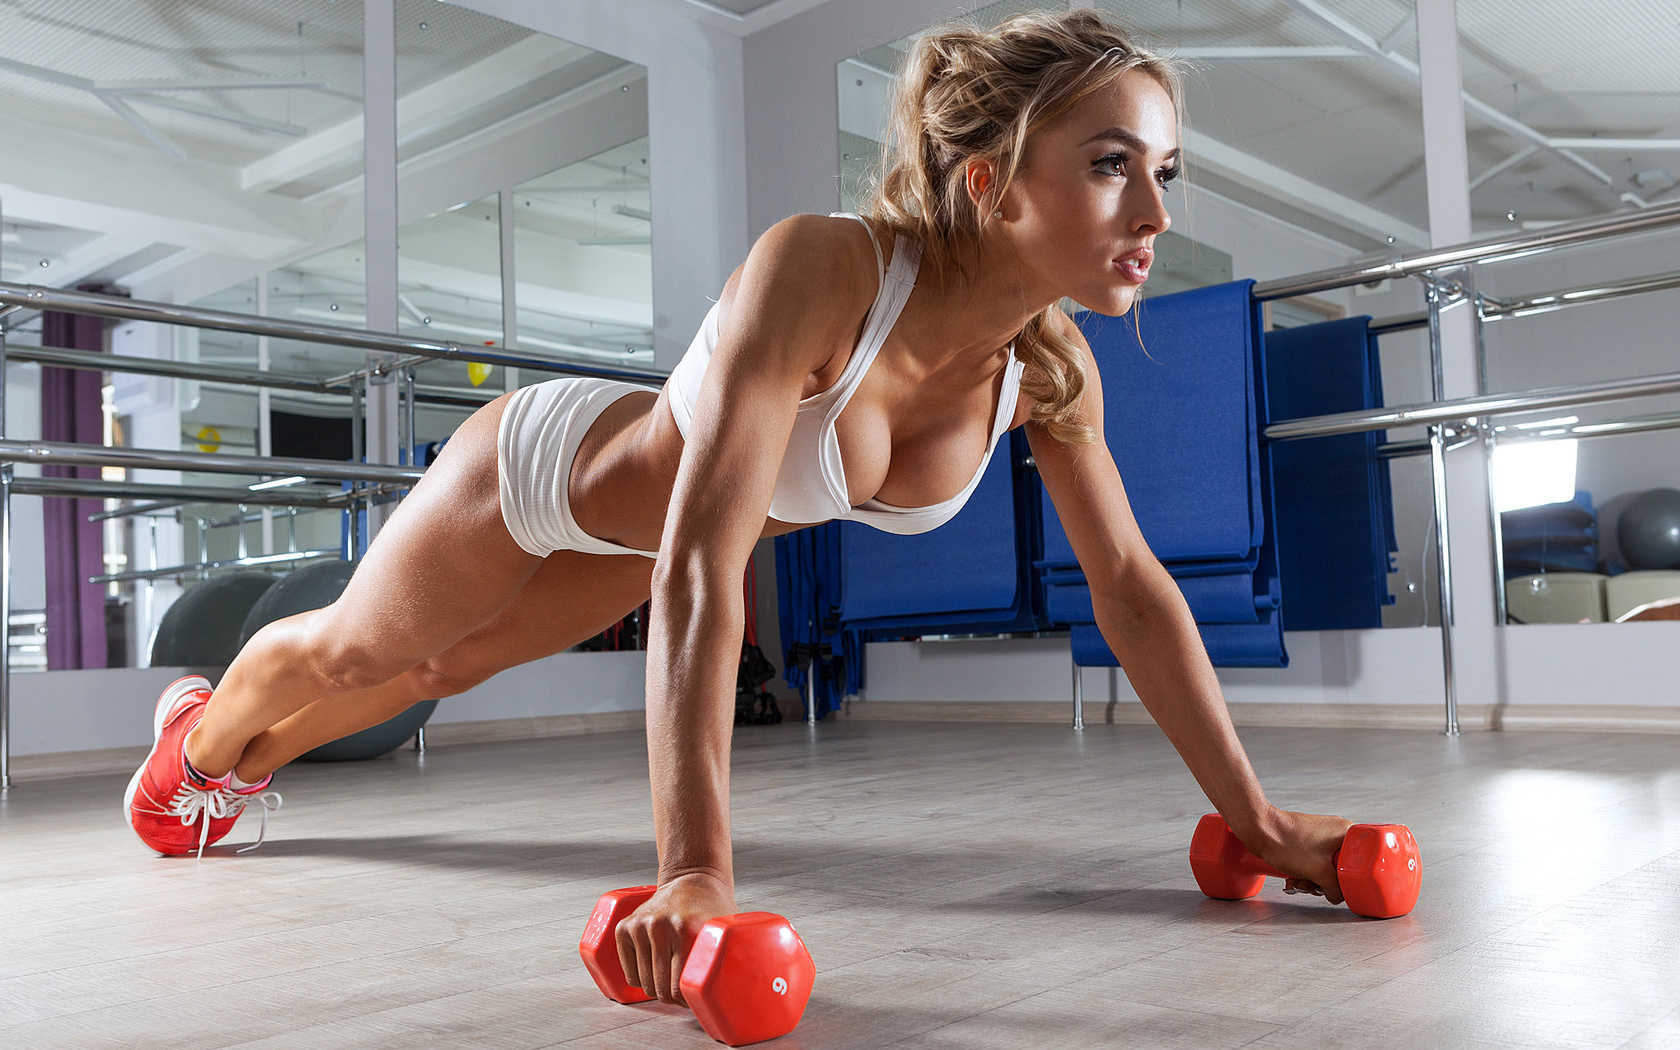 Sexy female sport pictures